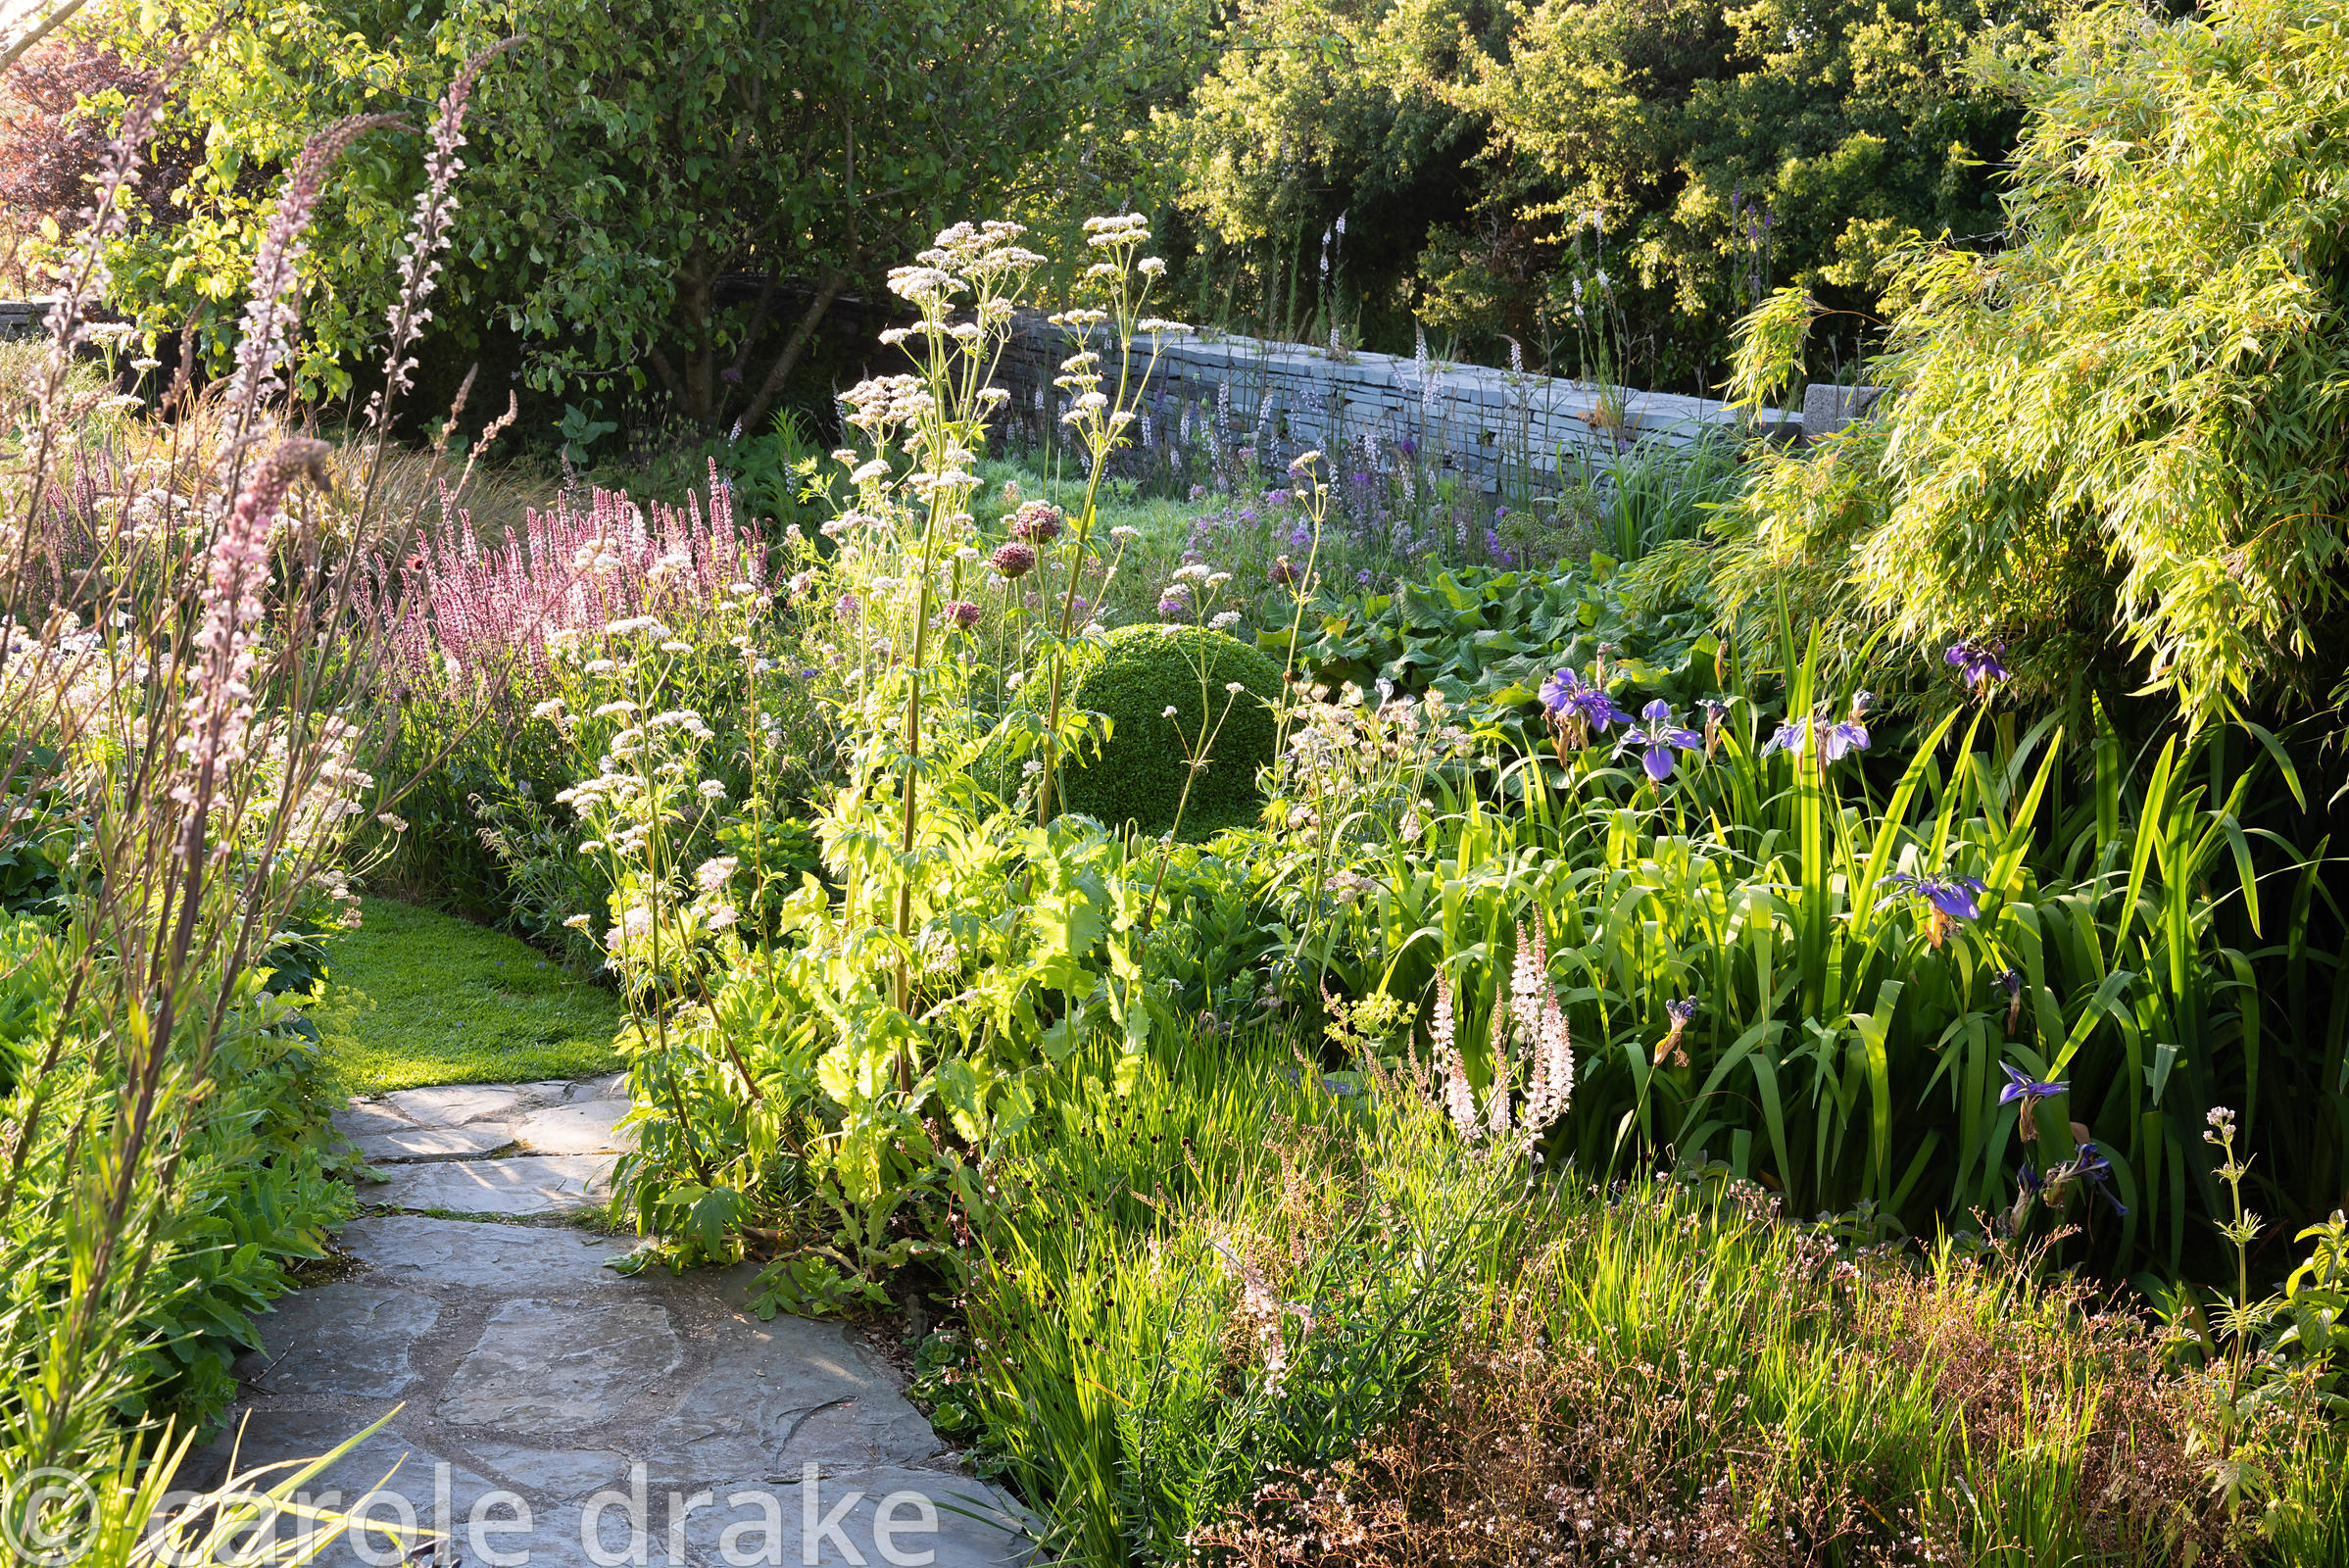 Path between borders planted with Linaria purpurea 'Canon Went', Valeriana officinalis, Allium 'Firmament', blue irises and s...